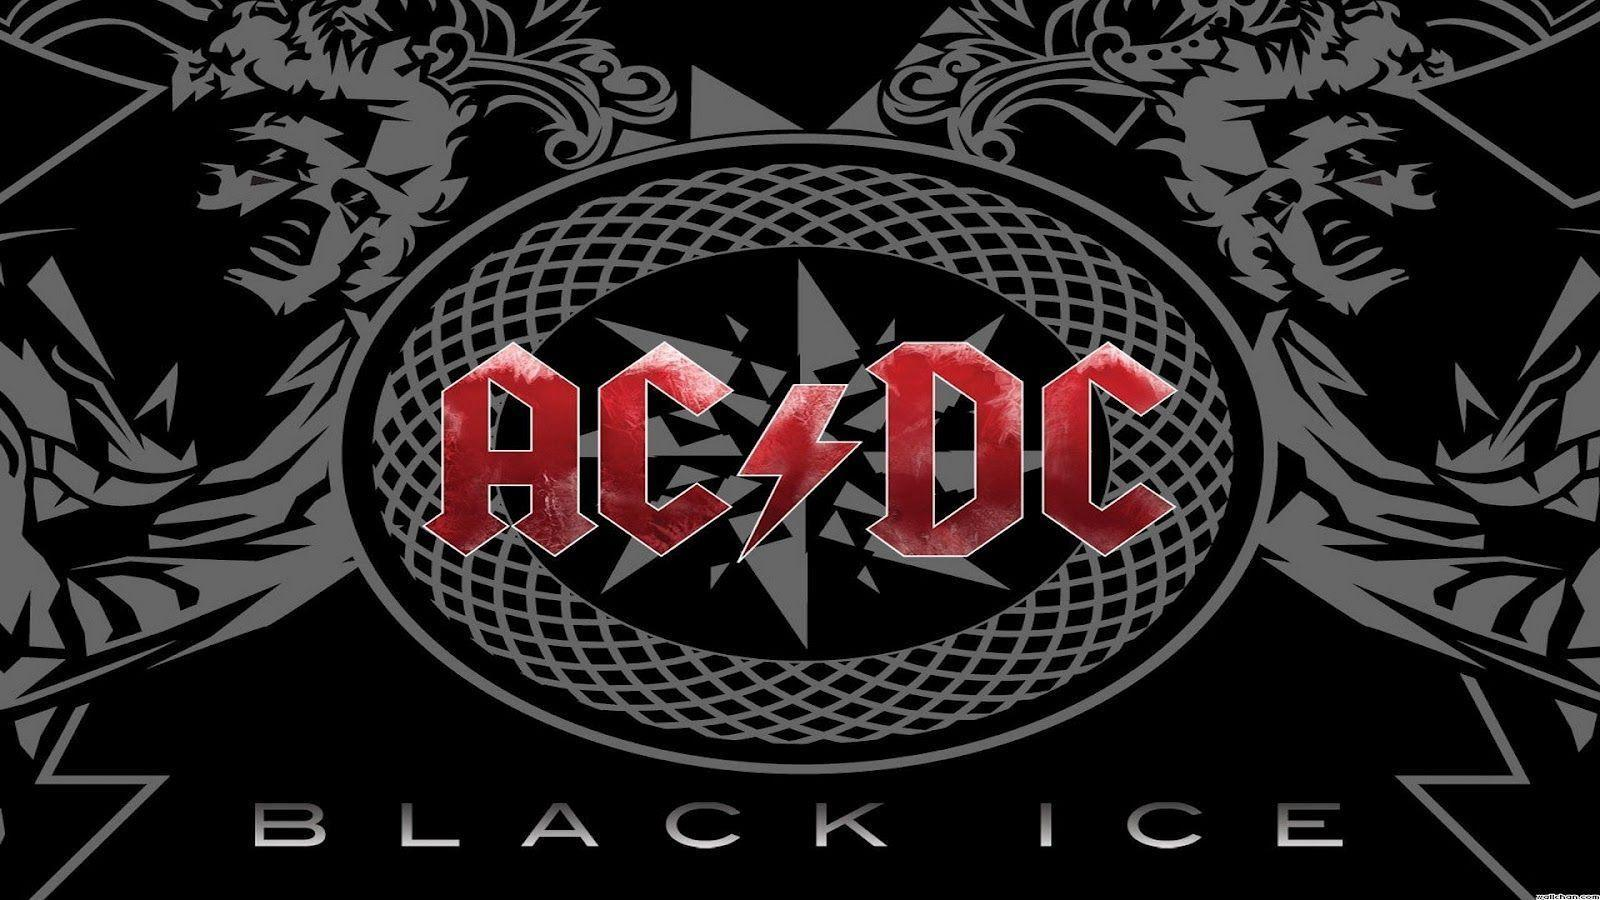 Wallpapers Ac Dc in Hd 1600x900PX ~ Wallpapers Acdc